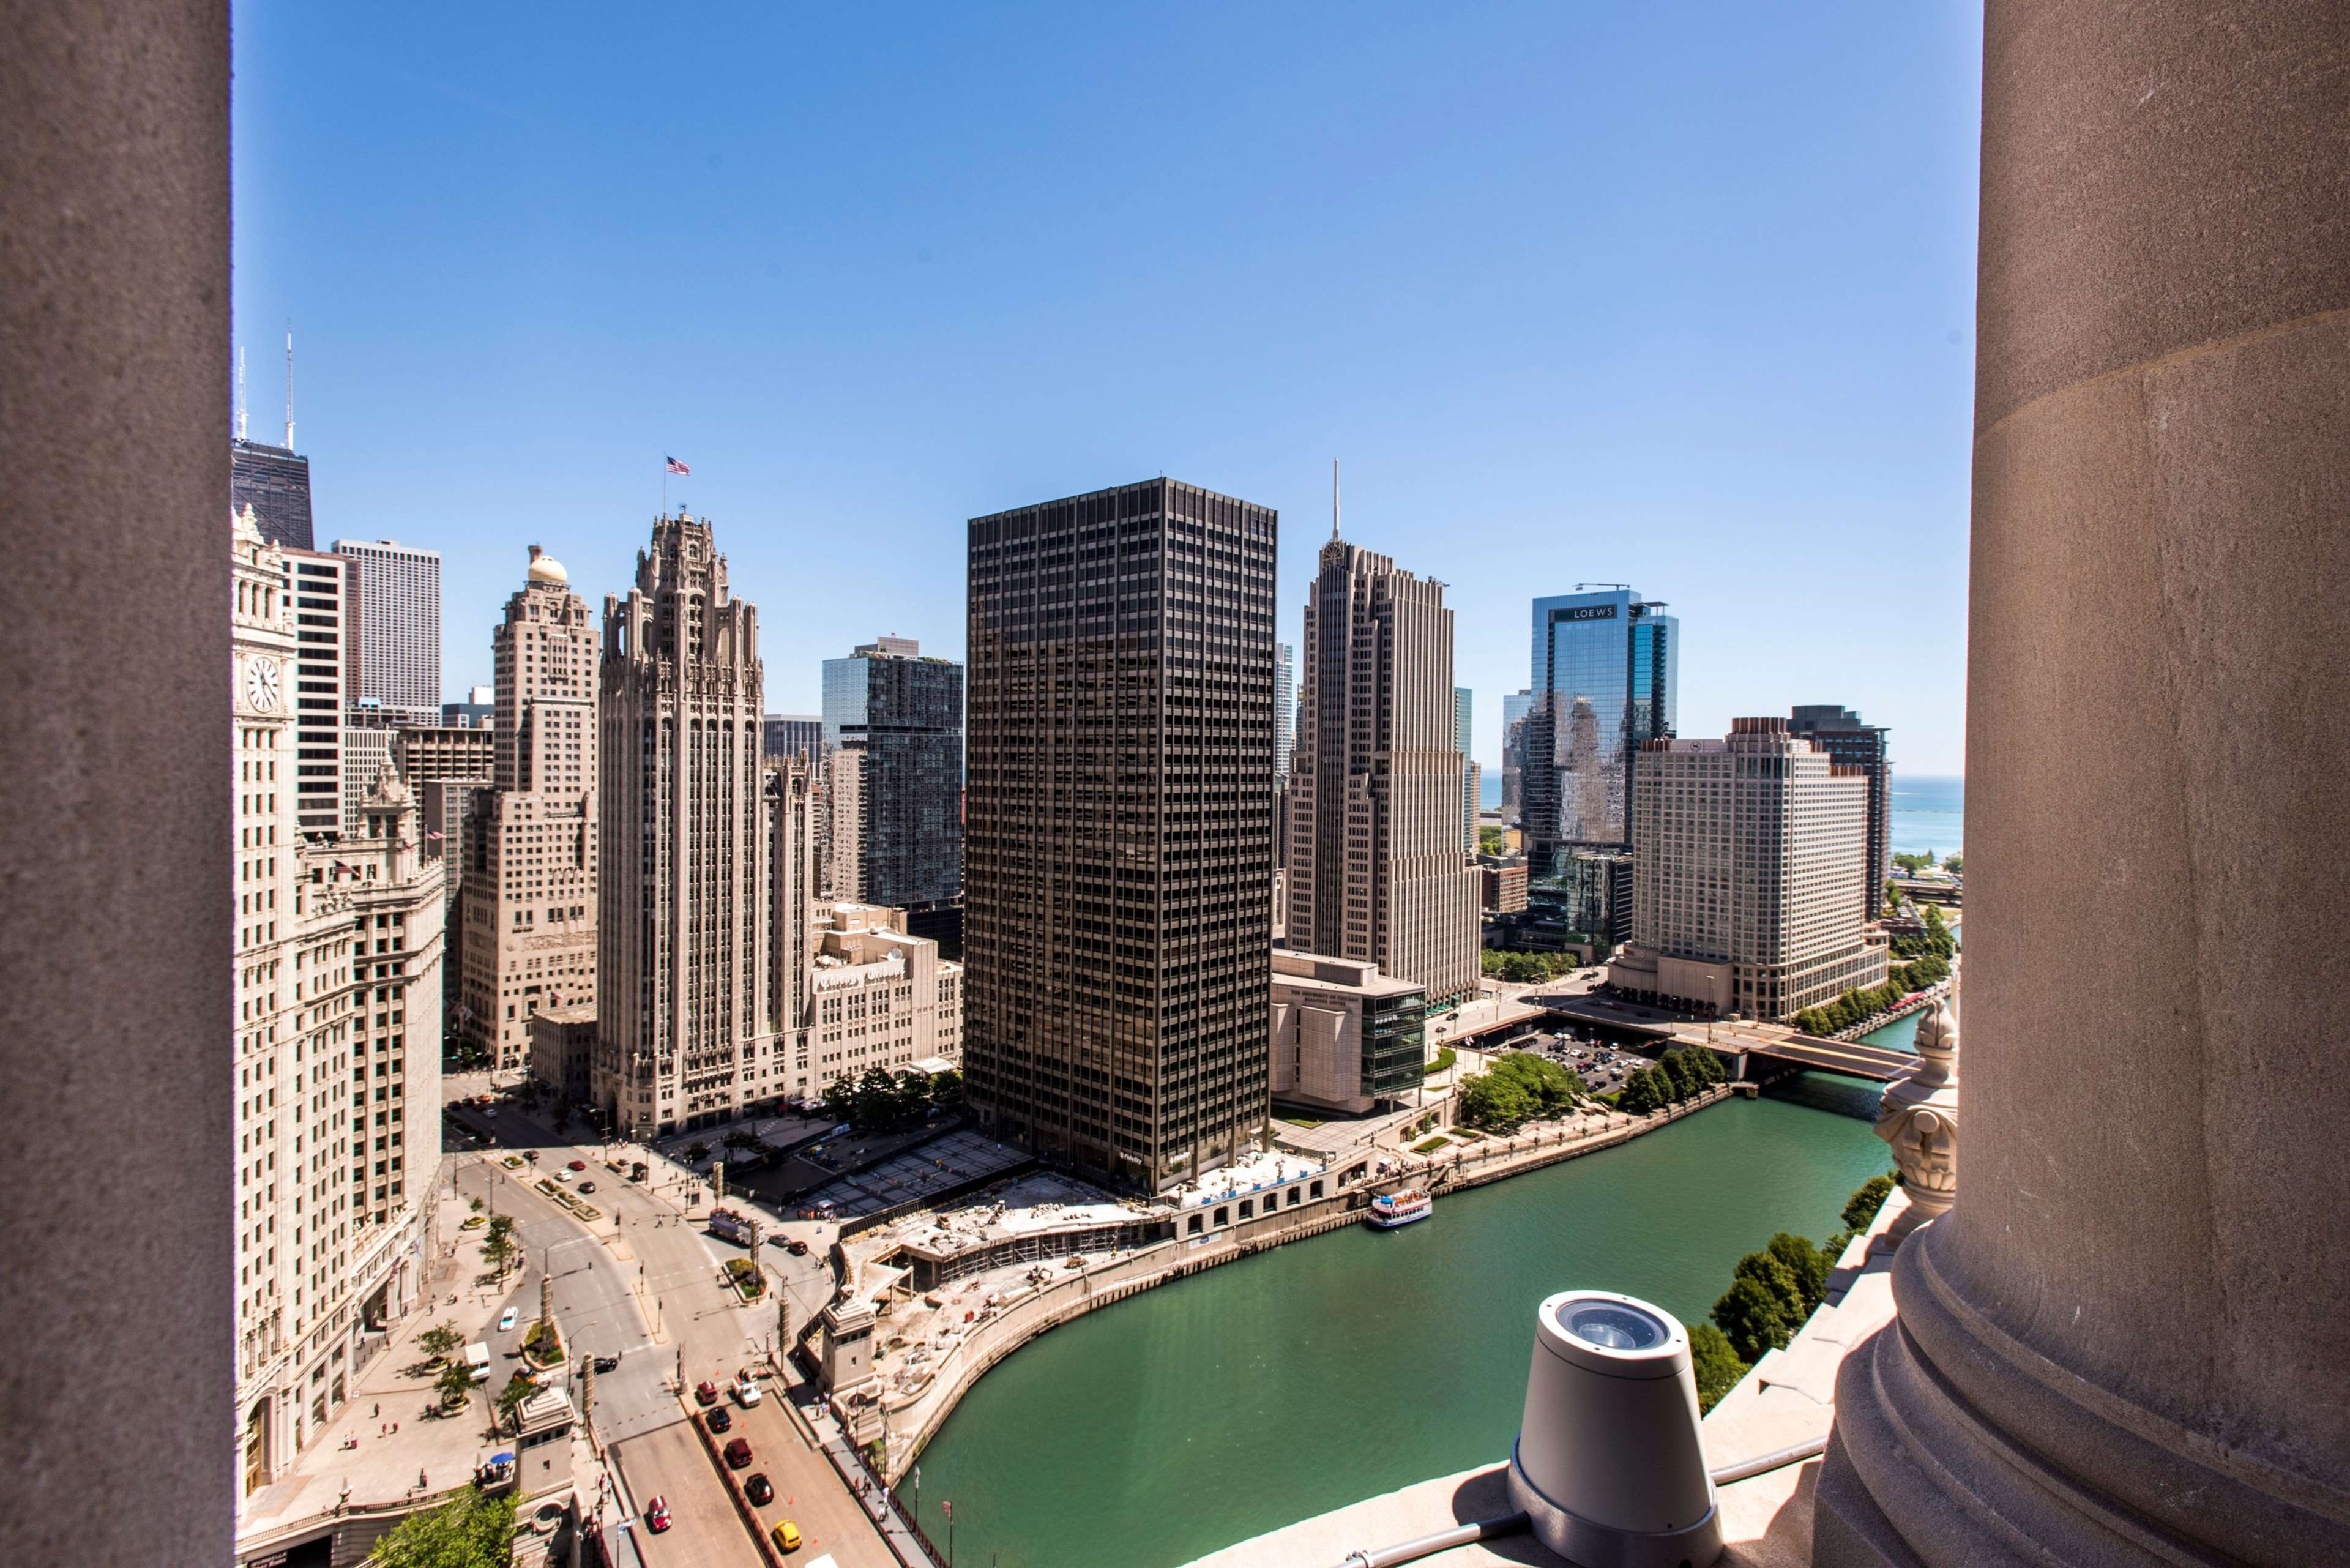 LondonHouse Chicago, Curio Collection by Hilton image 2